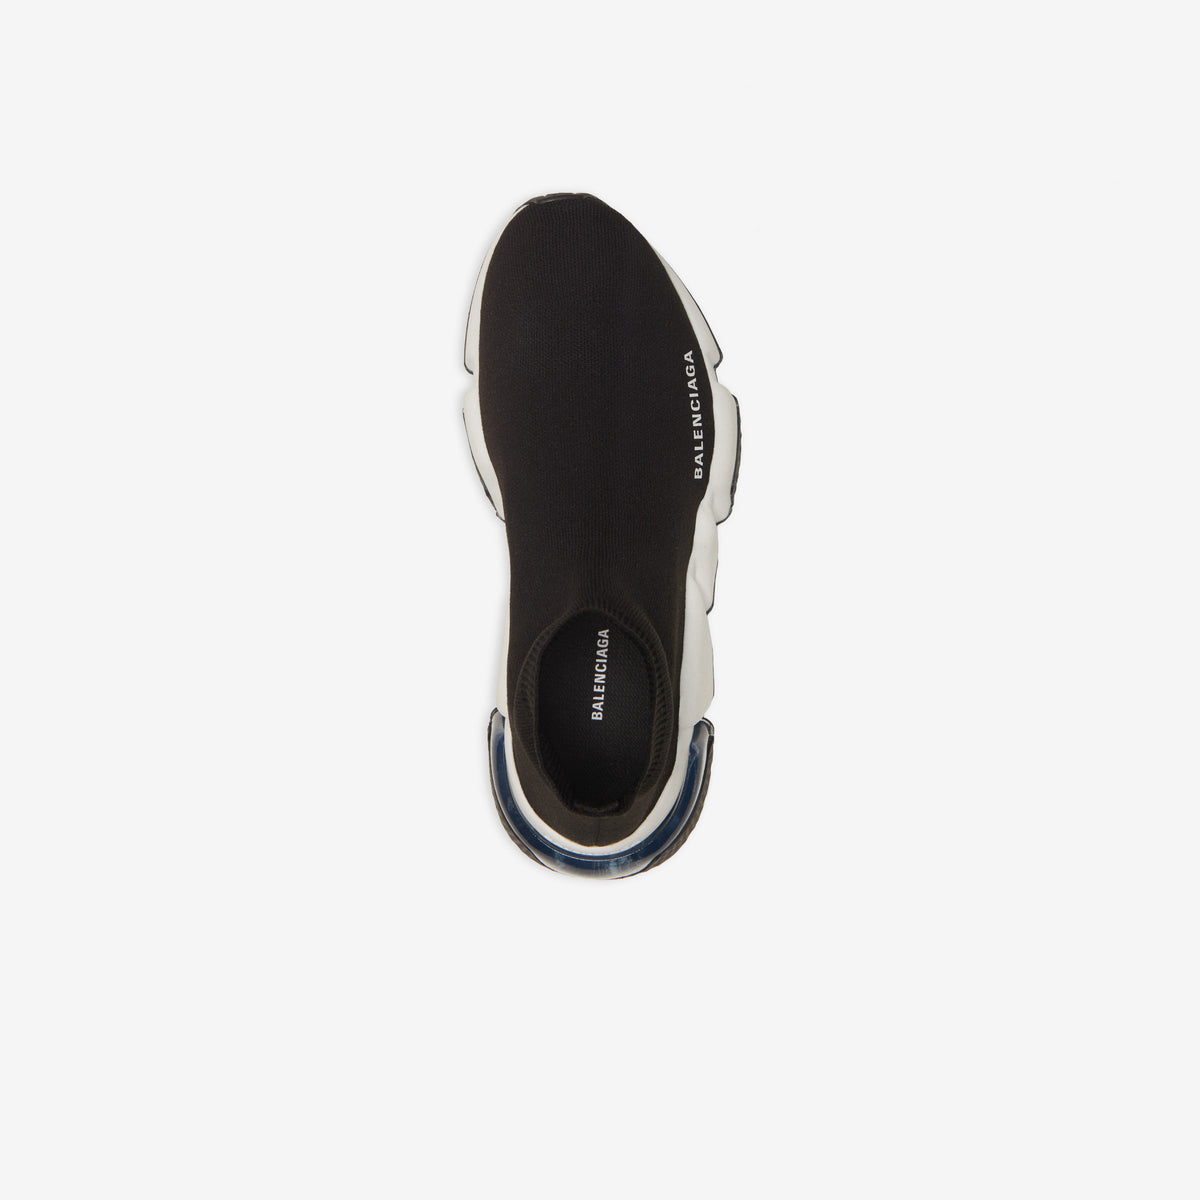 BALENCIAGA - SPEED CLEAR SOLE SNEAKER for WOMEN (black/white)